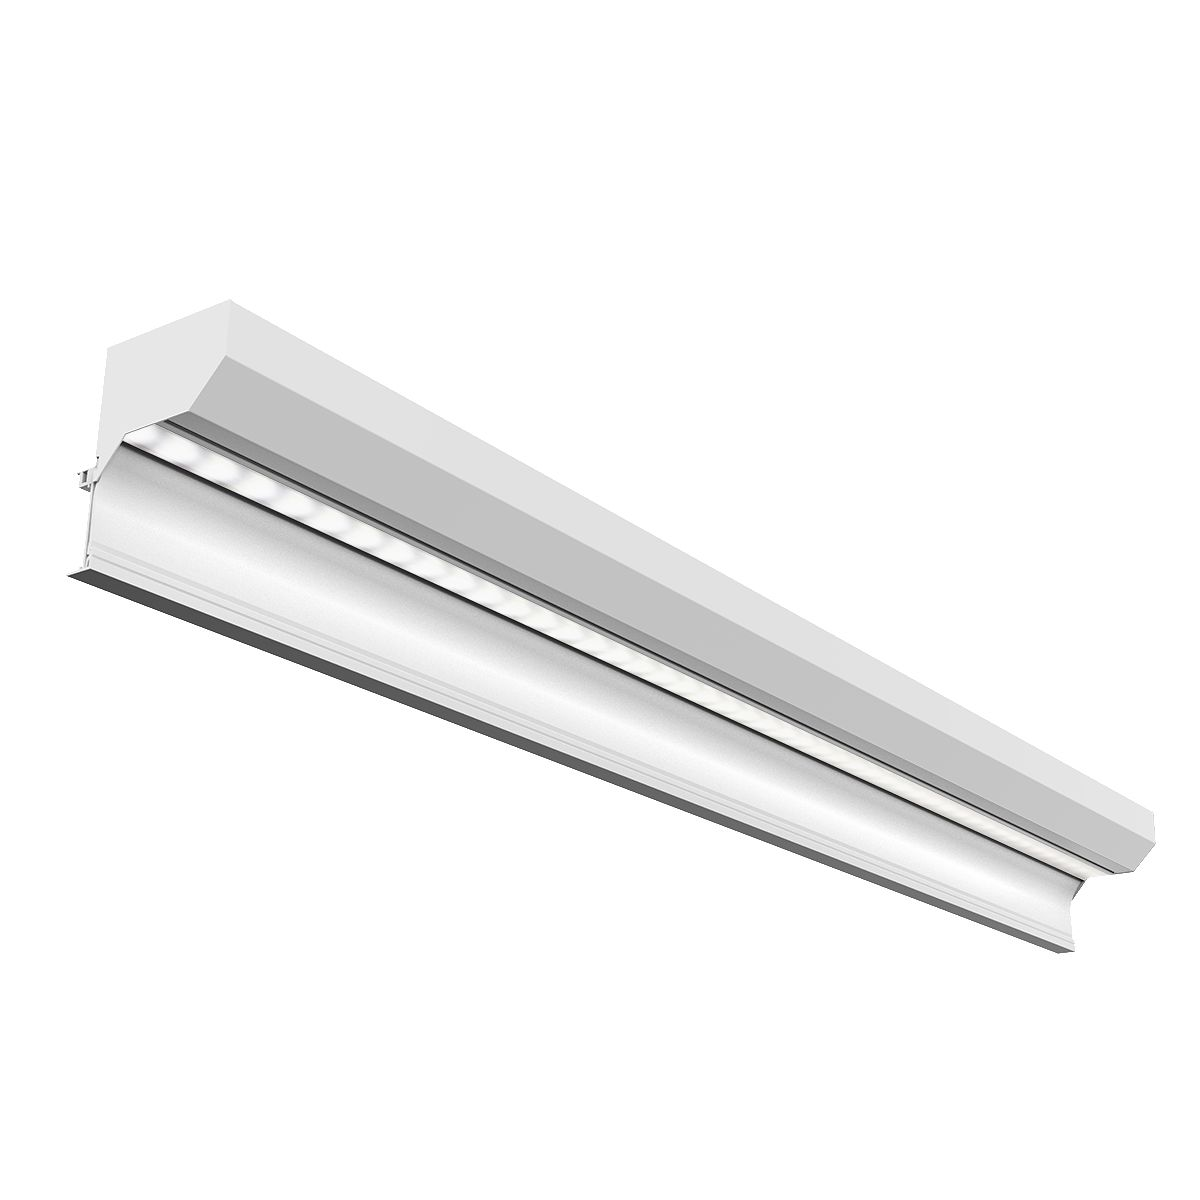 Wall Slot 6000 Led Perimeter Lighting Commercial Indoor How To Install Recessed For Dramatic Effect The Family